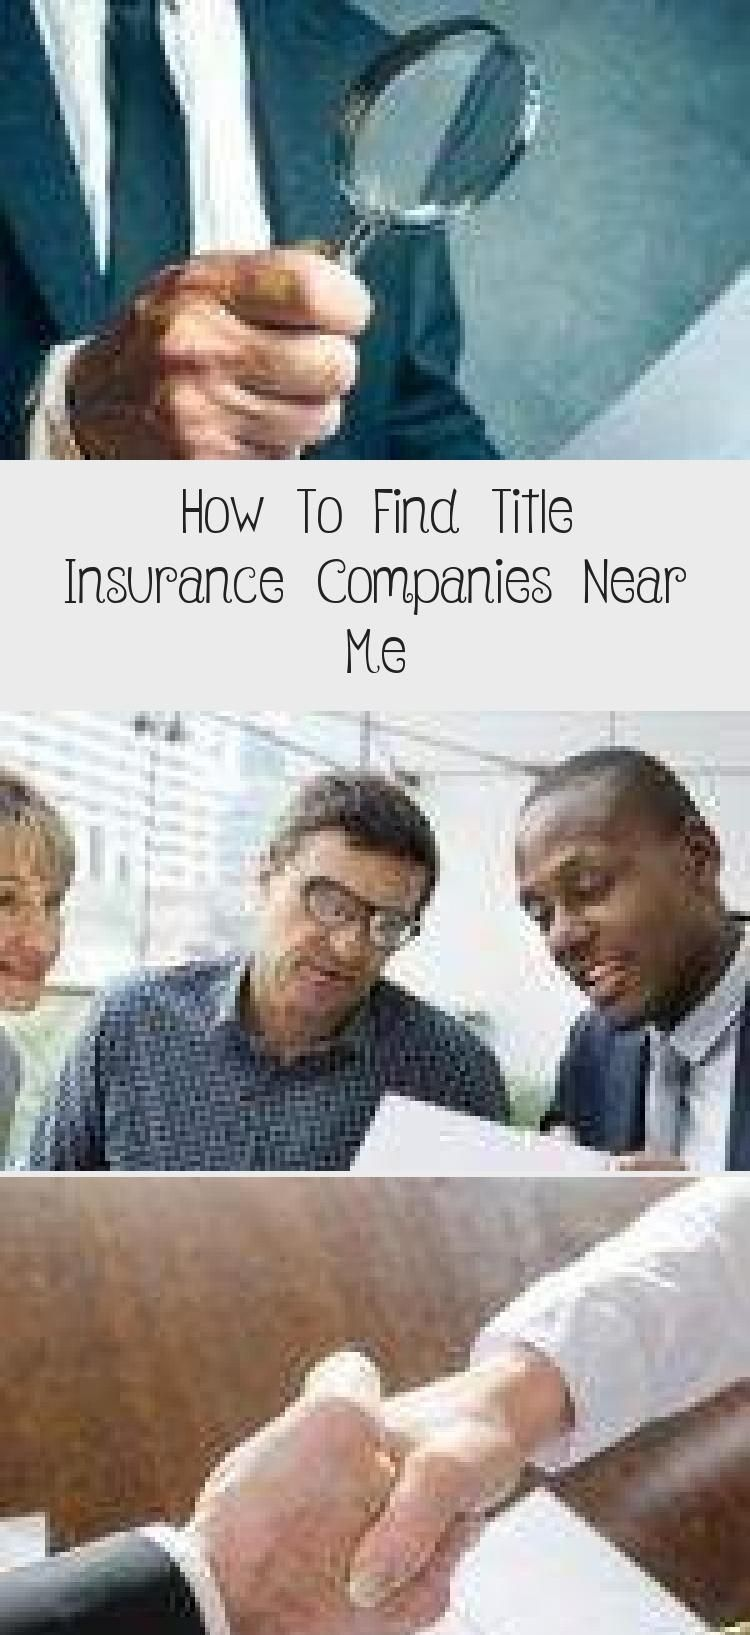 How To Find Title Insurance Companies Near Me In 2020 Title